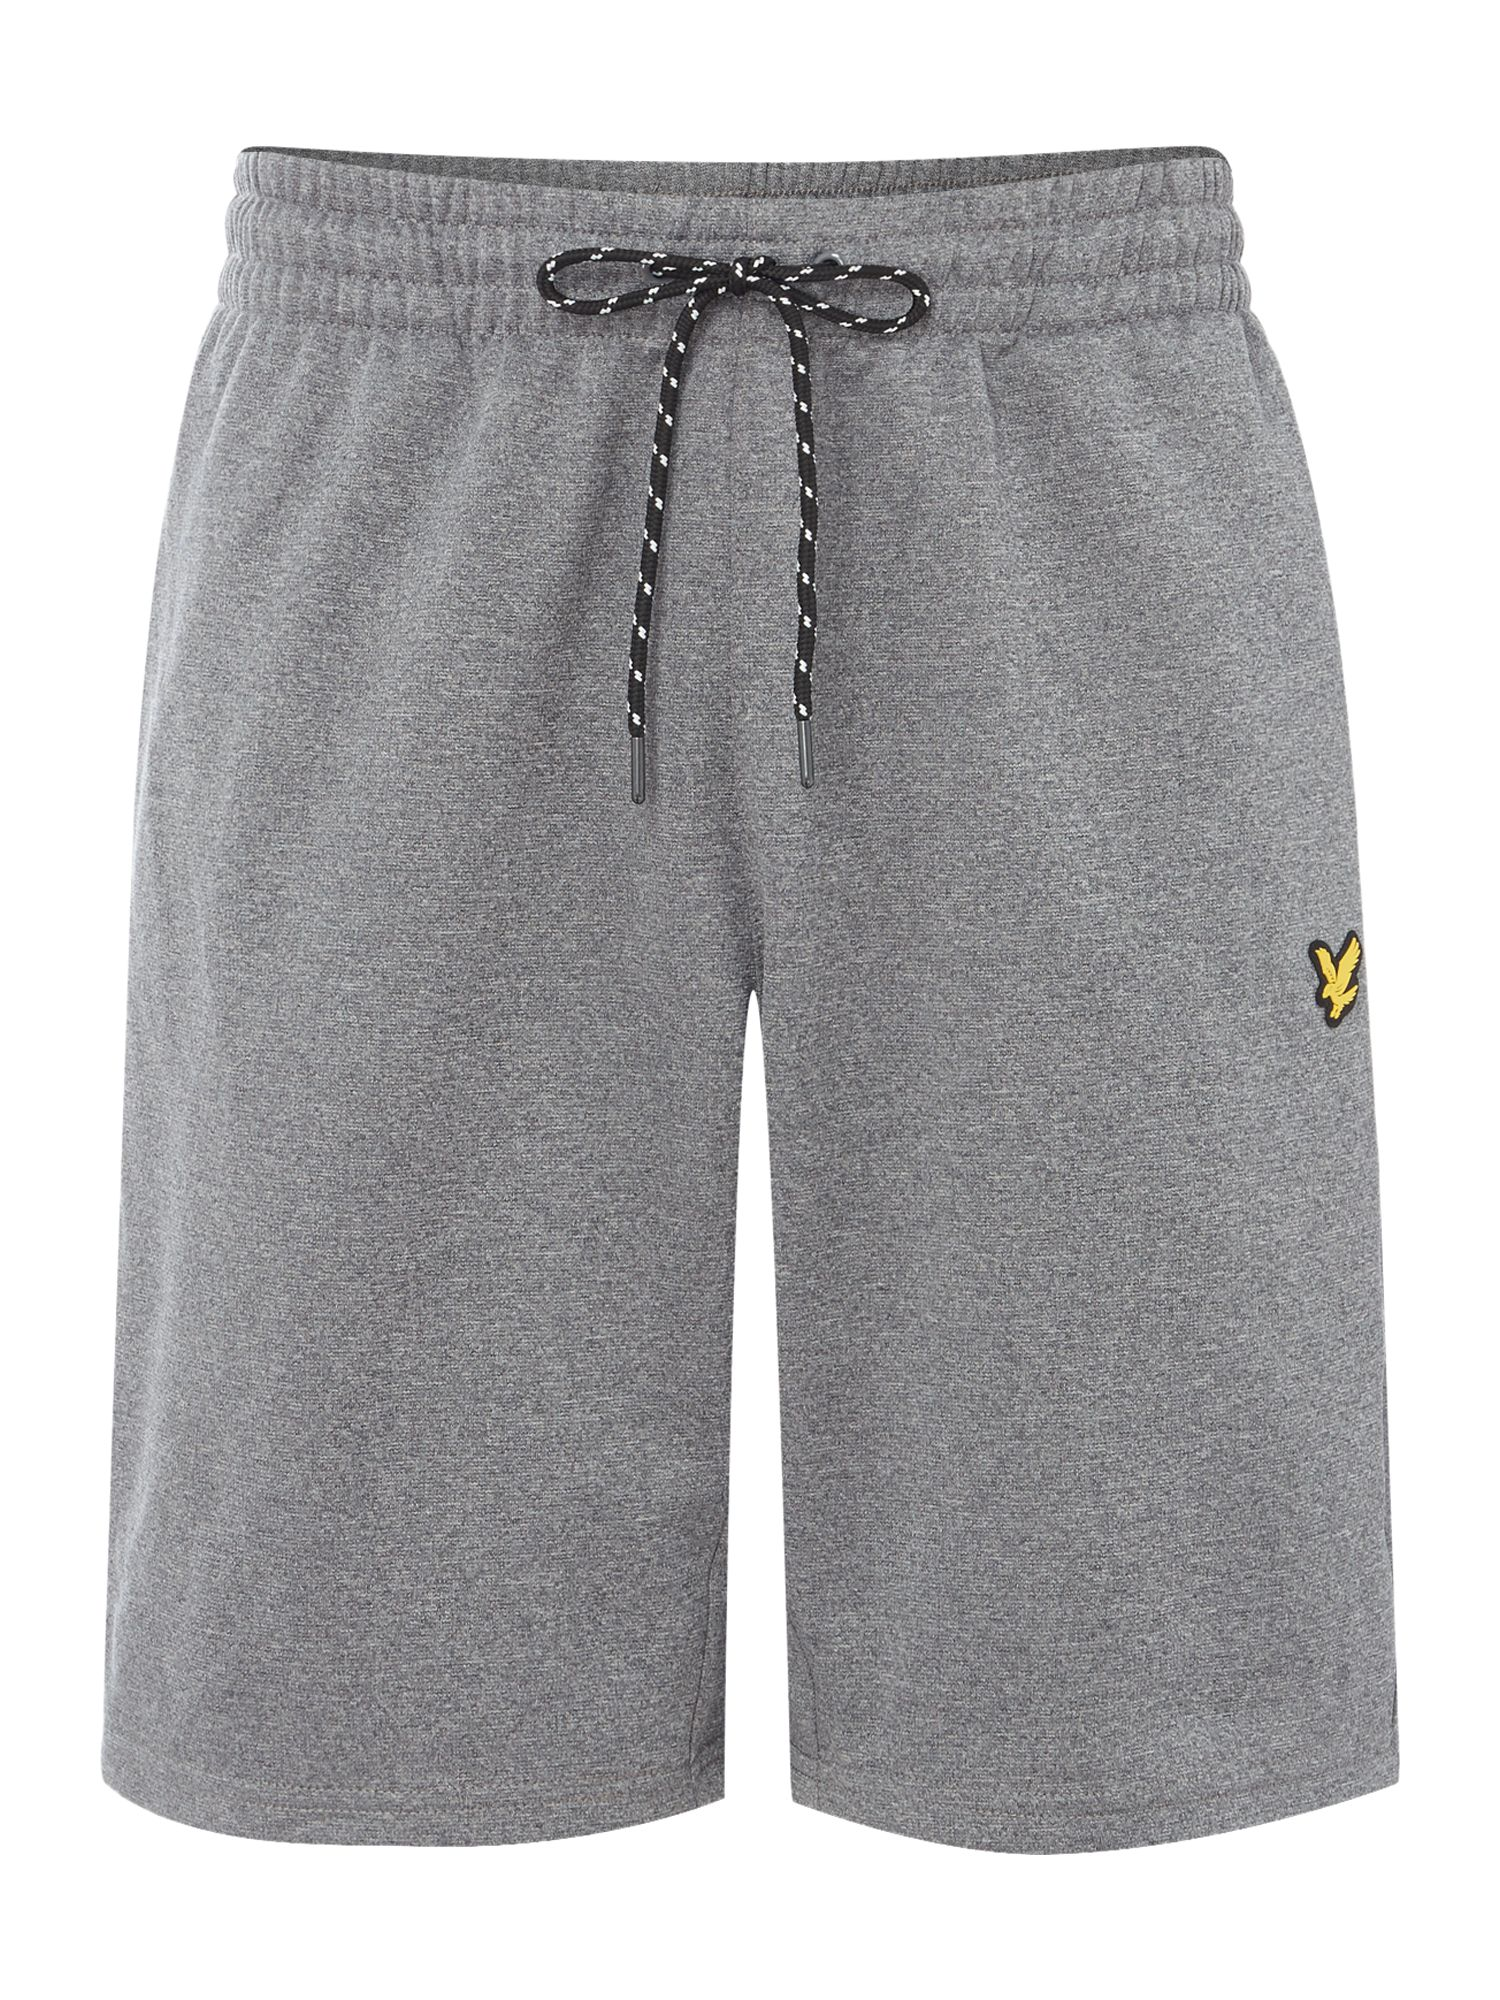 Lyle and Scott Men's Lyle and Scott Charlton sports fleece short, Grey Marl